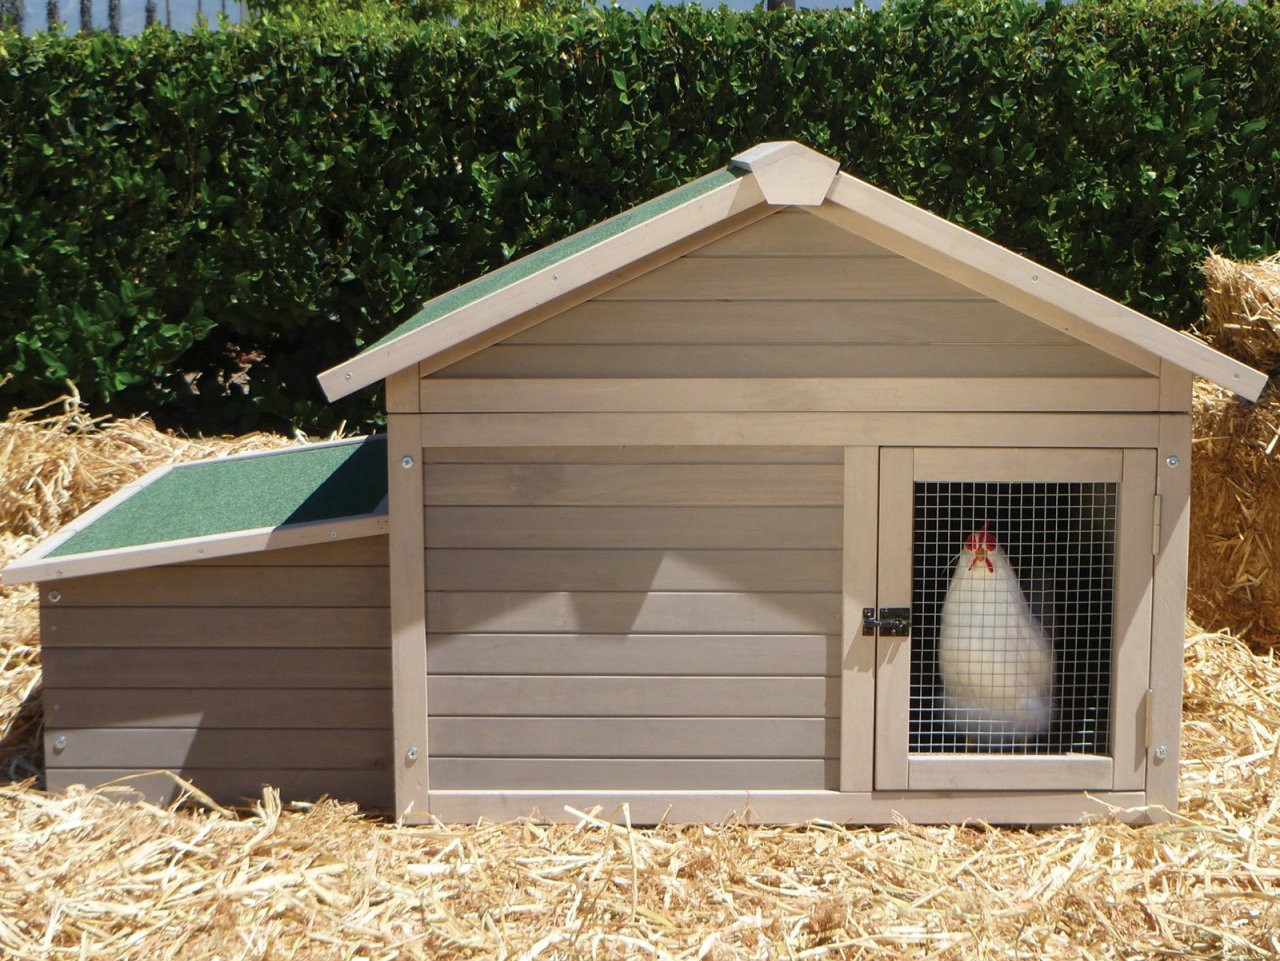 Barn shaped chicken coop build your own chicken coop for How to build a chicken hutch